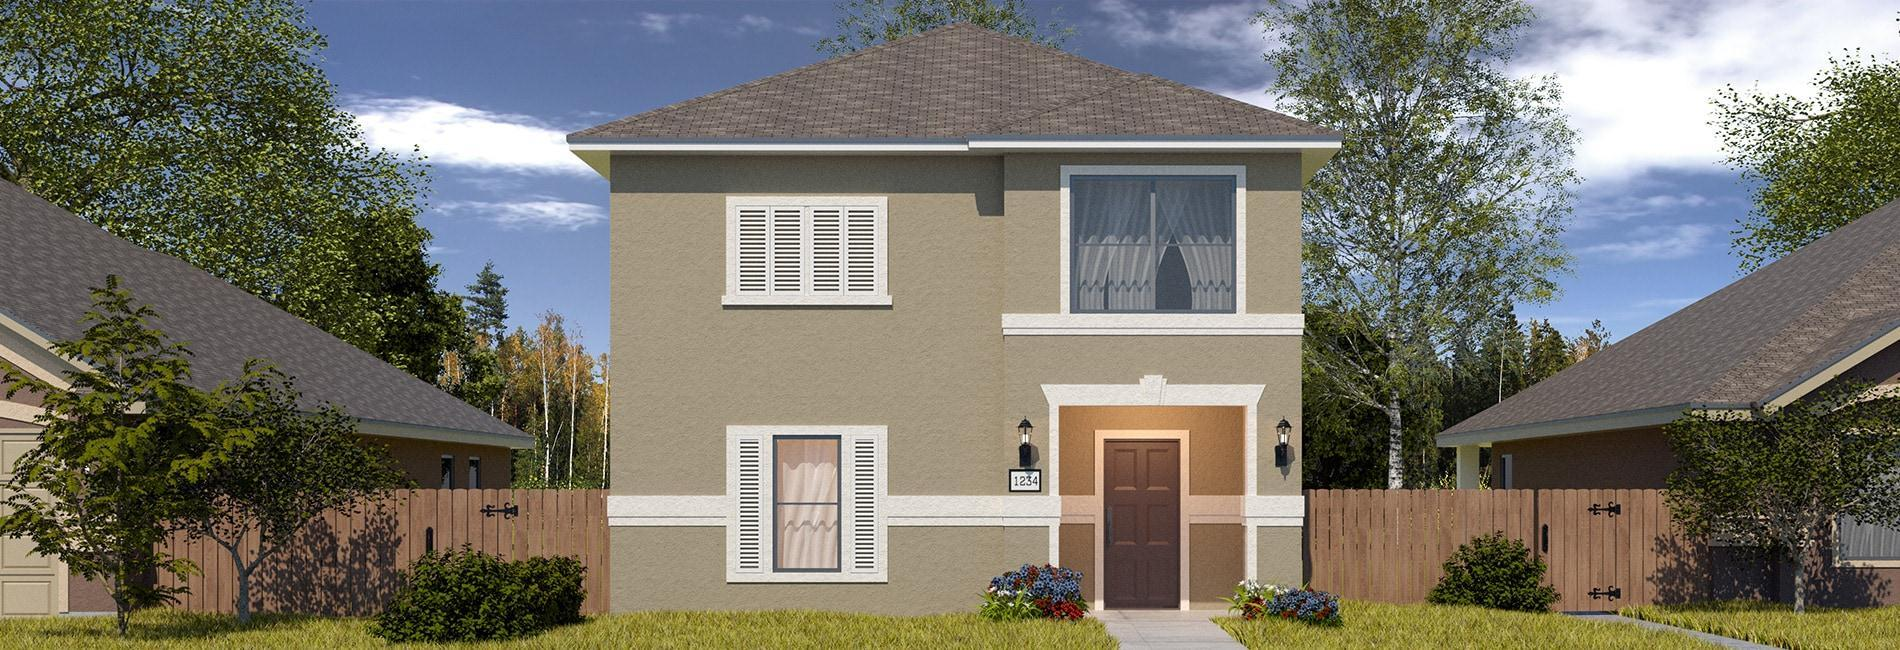 Exterior featured in the Santa Elizabeth By WestWind Homes in Laredo, TX